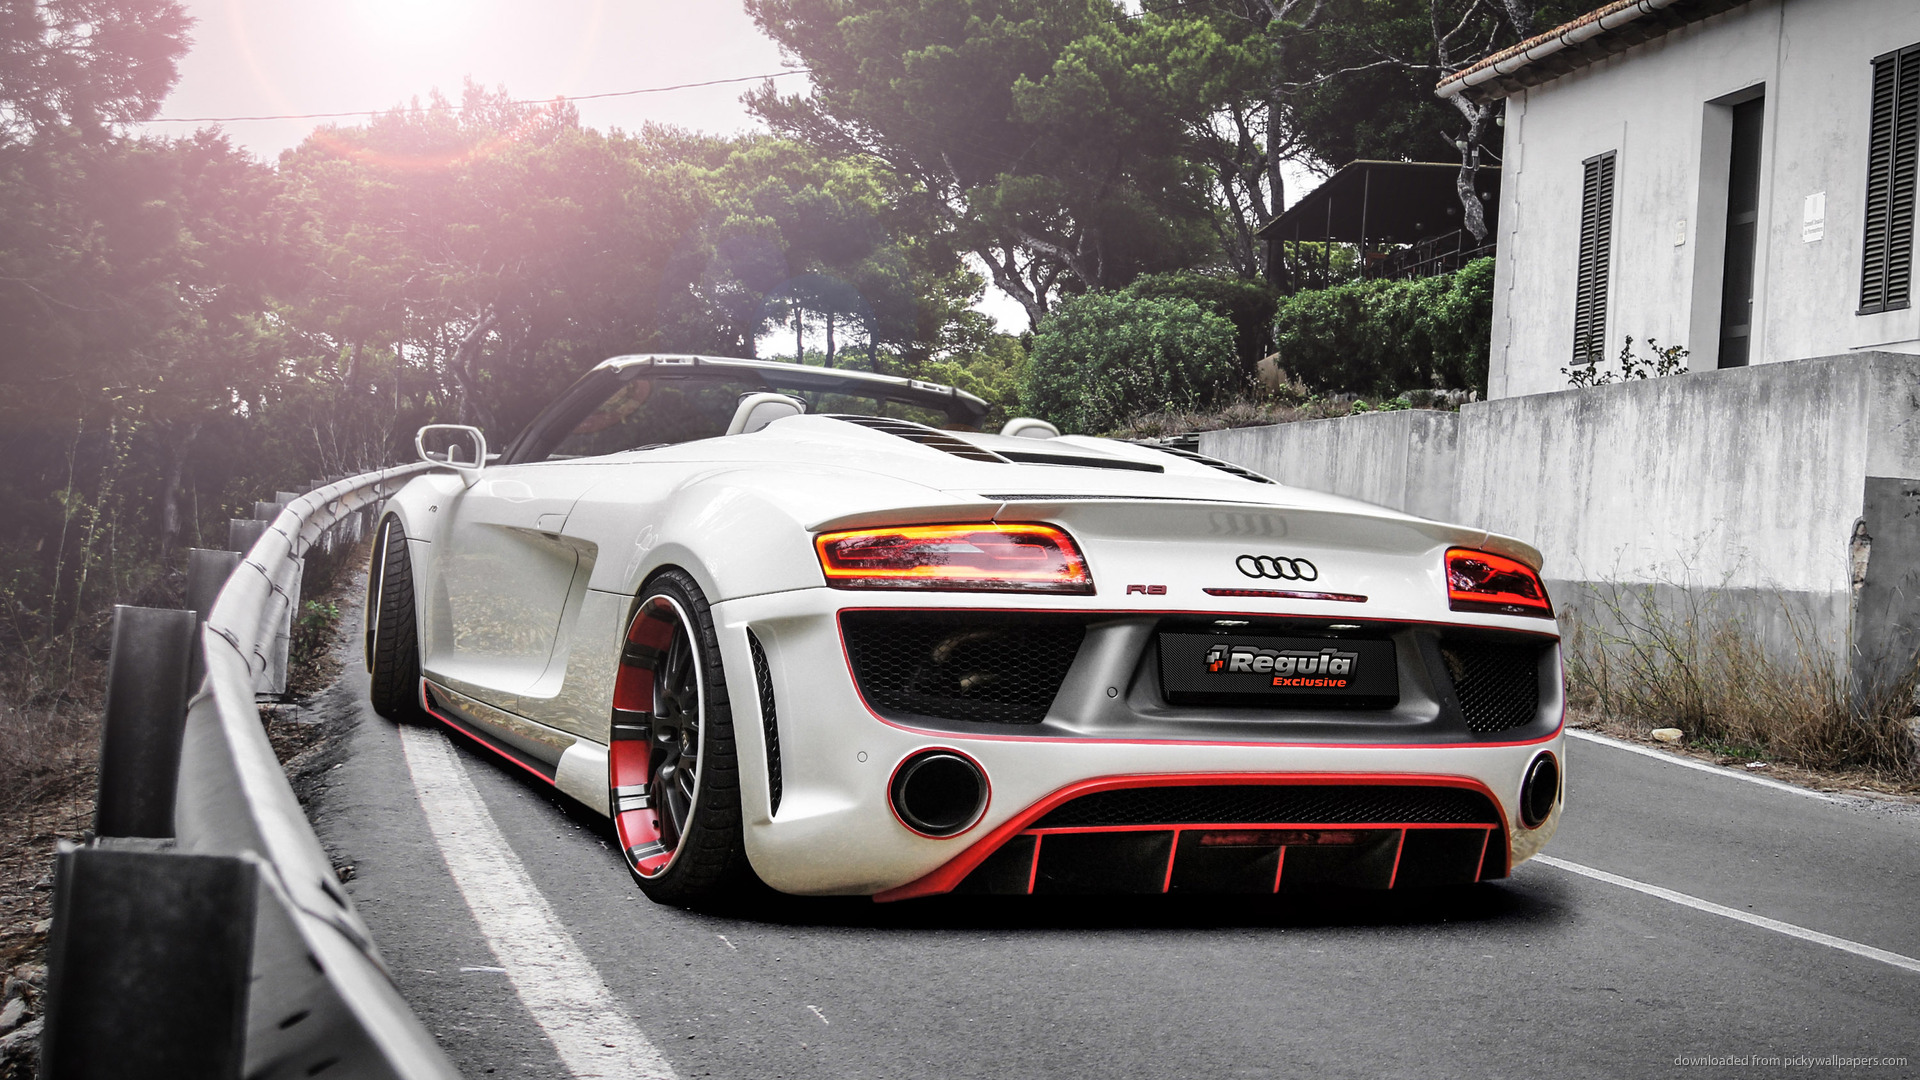 Download 1920x1080 Audi R8 V10 Spyder Regula Tuning Wallpaper 1920x1080